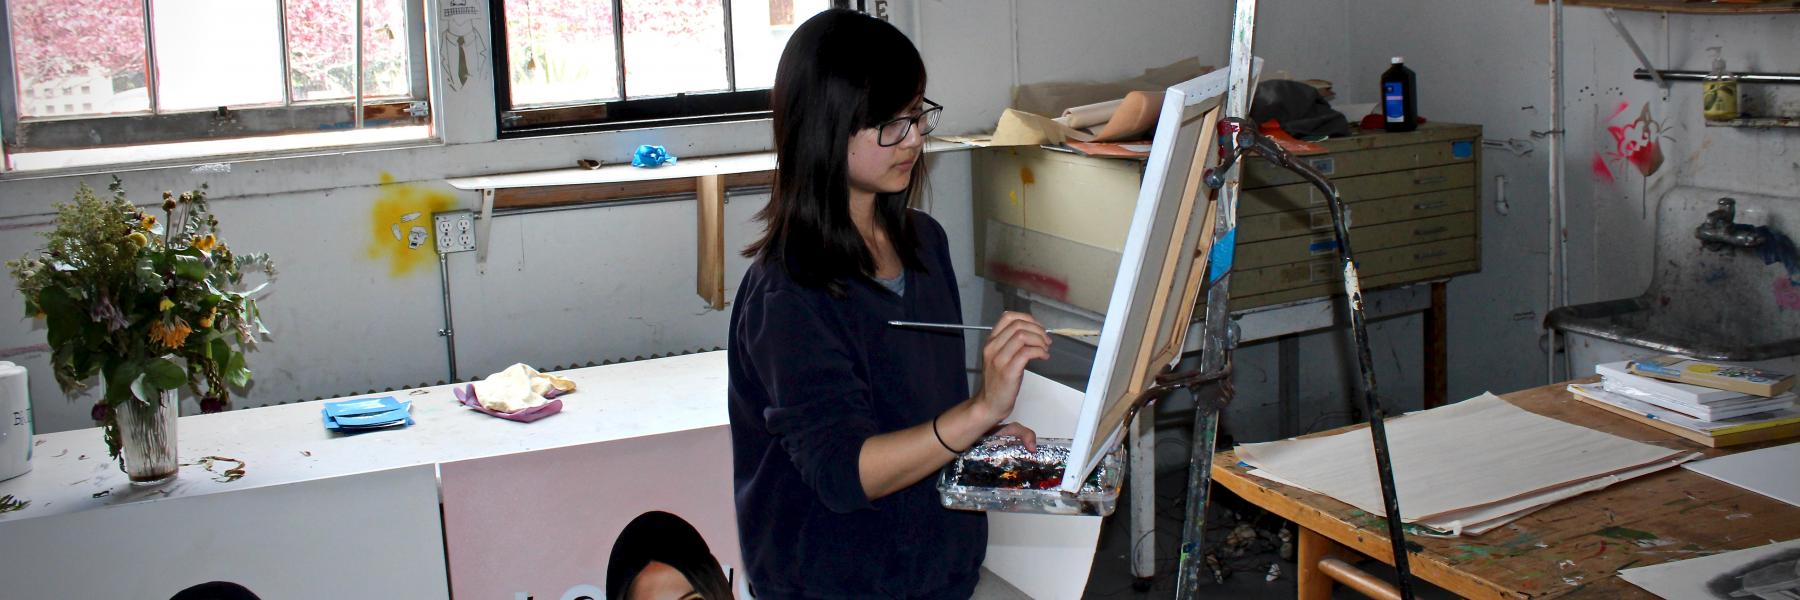 CCS Art student Allison Young in her studio. Credit: Will Proctor